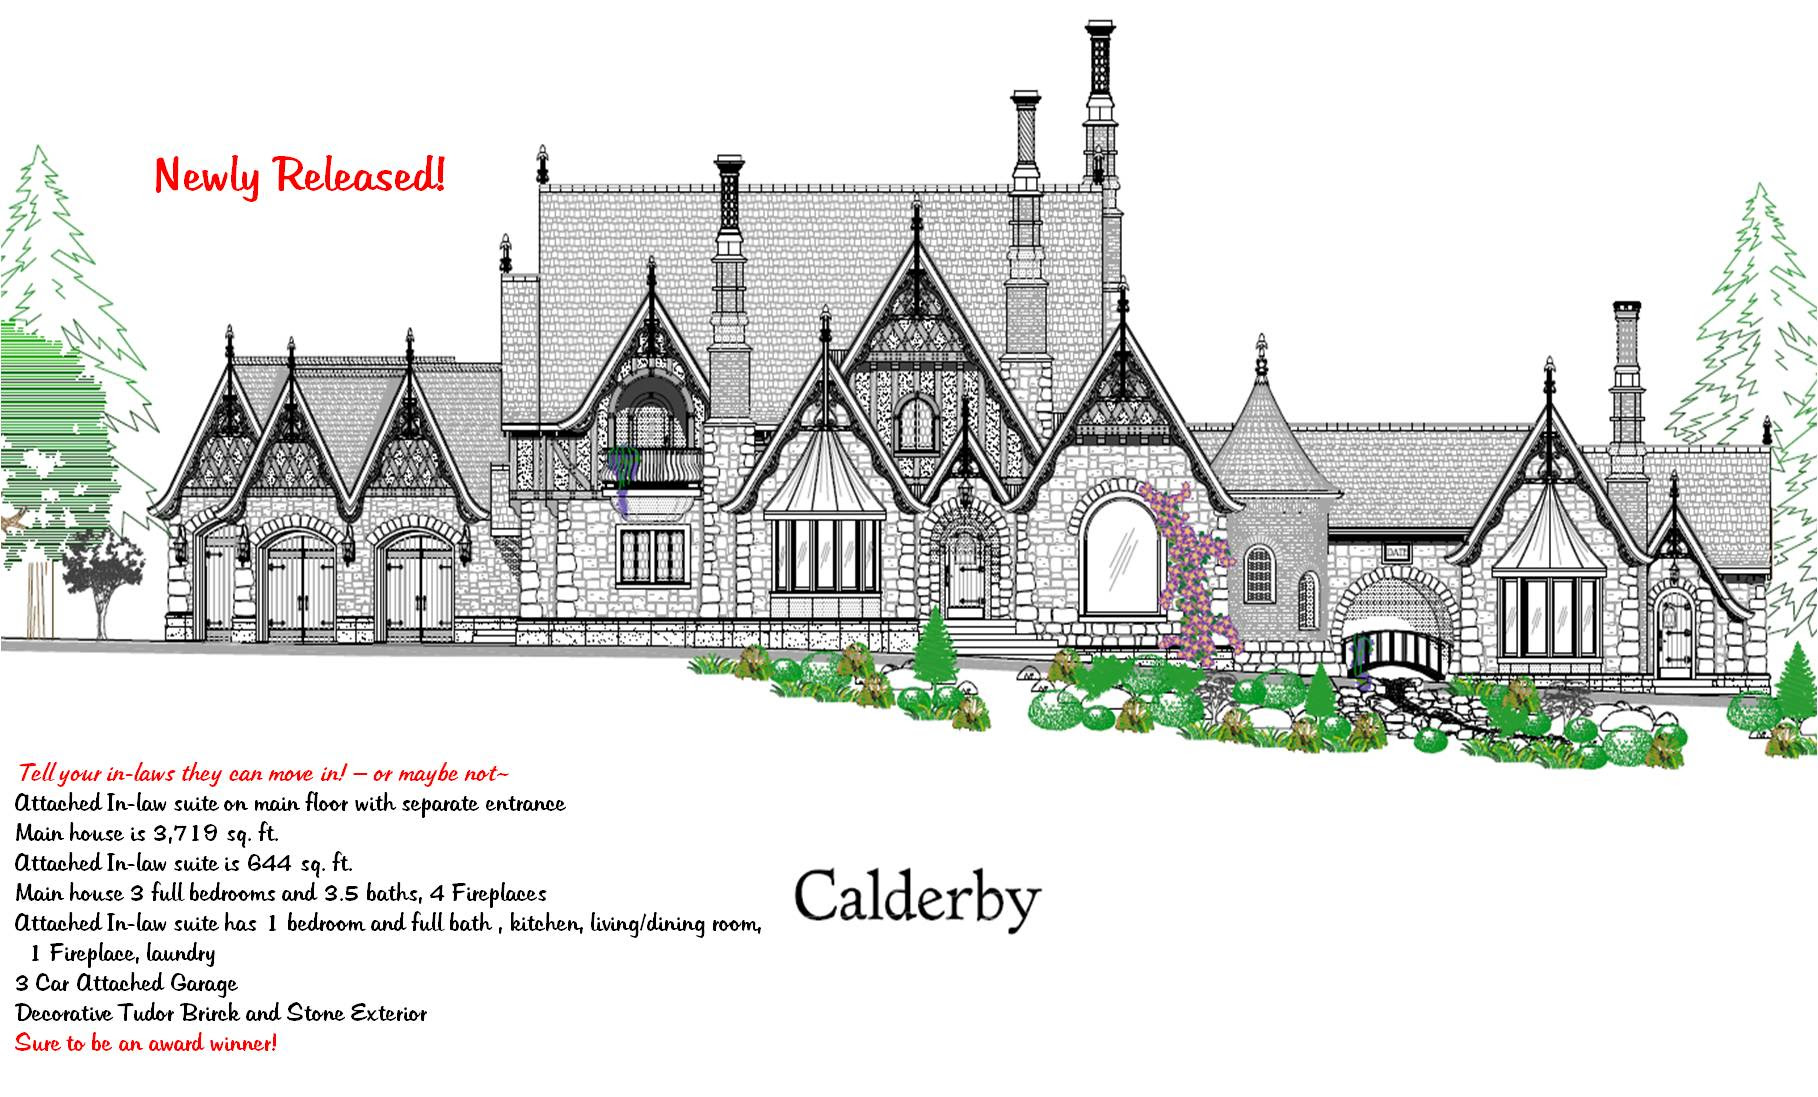 New Custom Homes In Maryland Authentic Storybook Homes In Carroll Howard Frederick Baltimore Counties 1801 Sq Ft